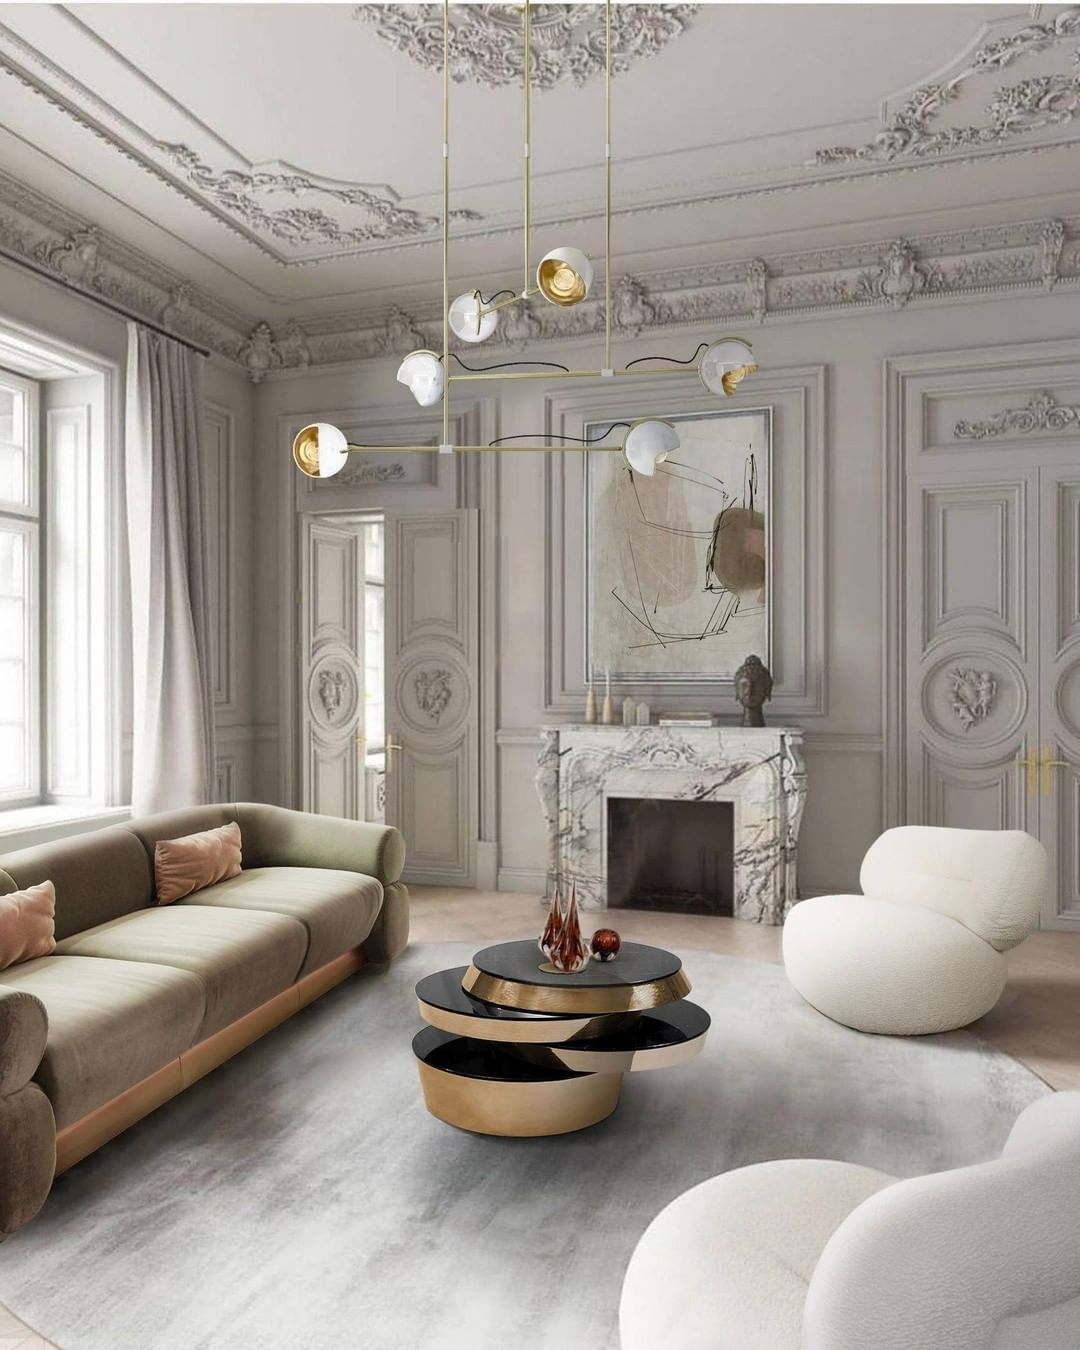 FEEL INSPIRED WITH THIS LUXURIOUS LIVING ROOM